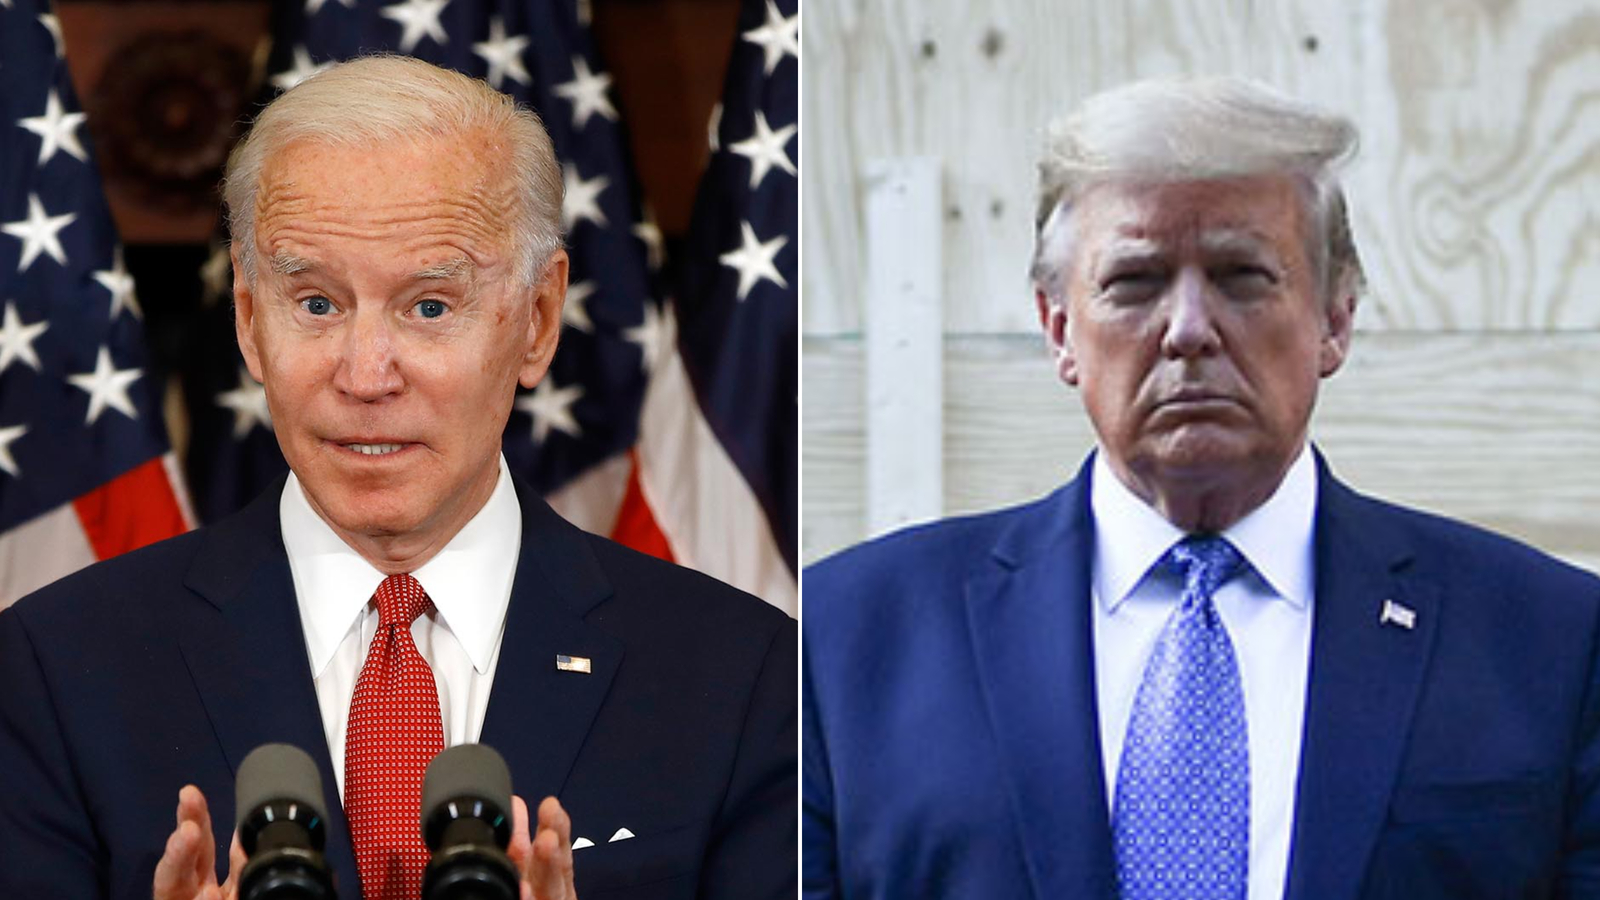 Trump bests Biden in July fundraising but money gap between the campaigns has essentially closed